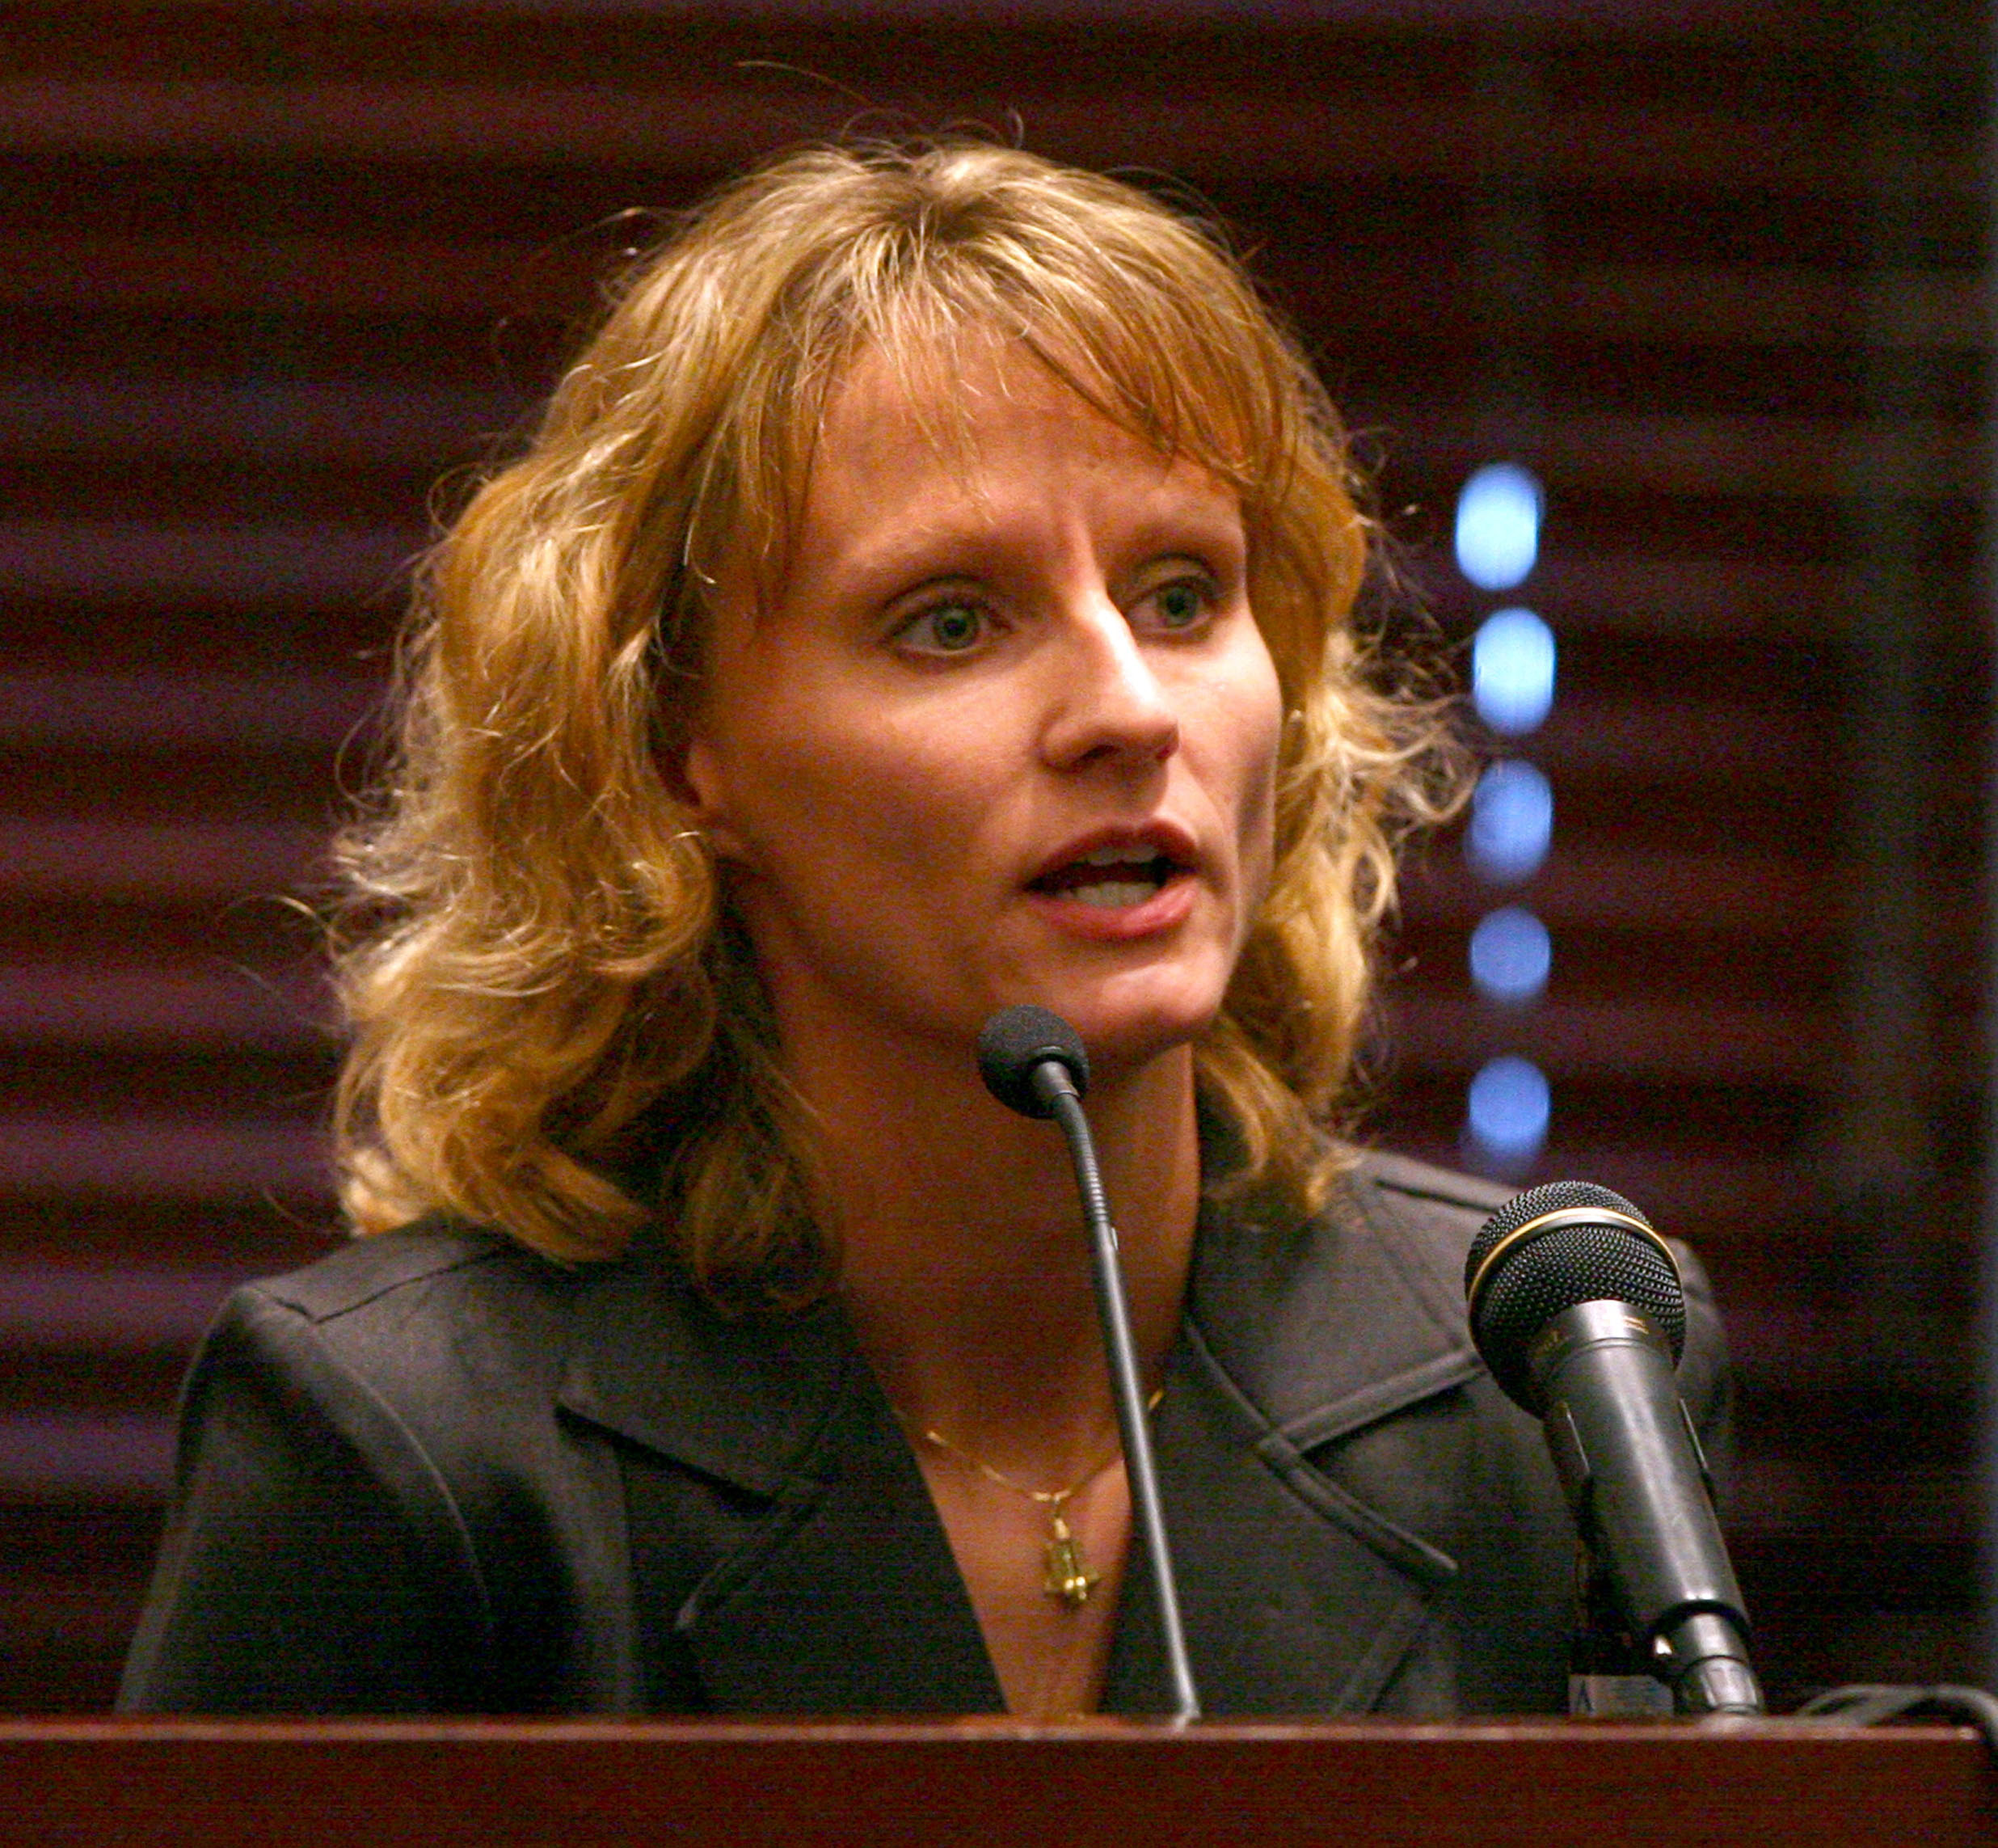 Air Force Capt. Colleen Shipman testifies at the hearing for former NASA astronaut Lisa Nowak, Friday, August 24, 2007, at the Orange County courthouse in Orlando, Florida.